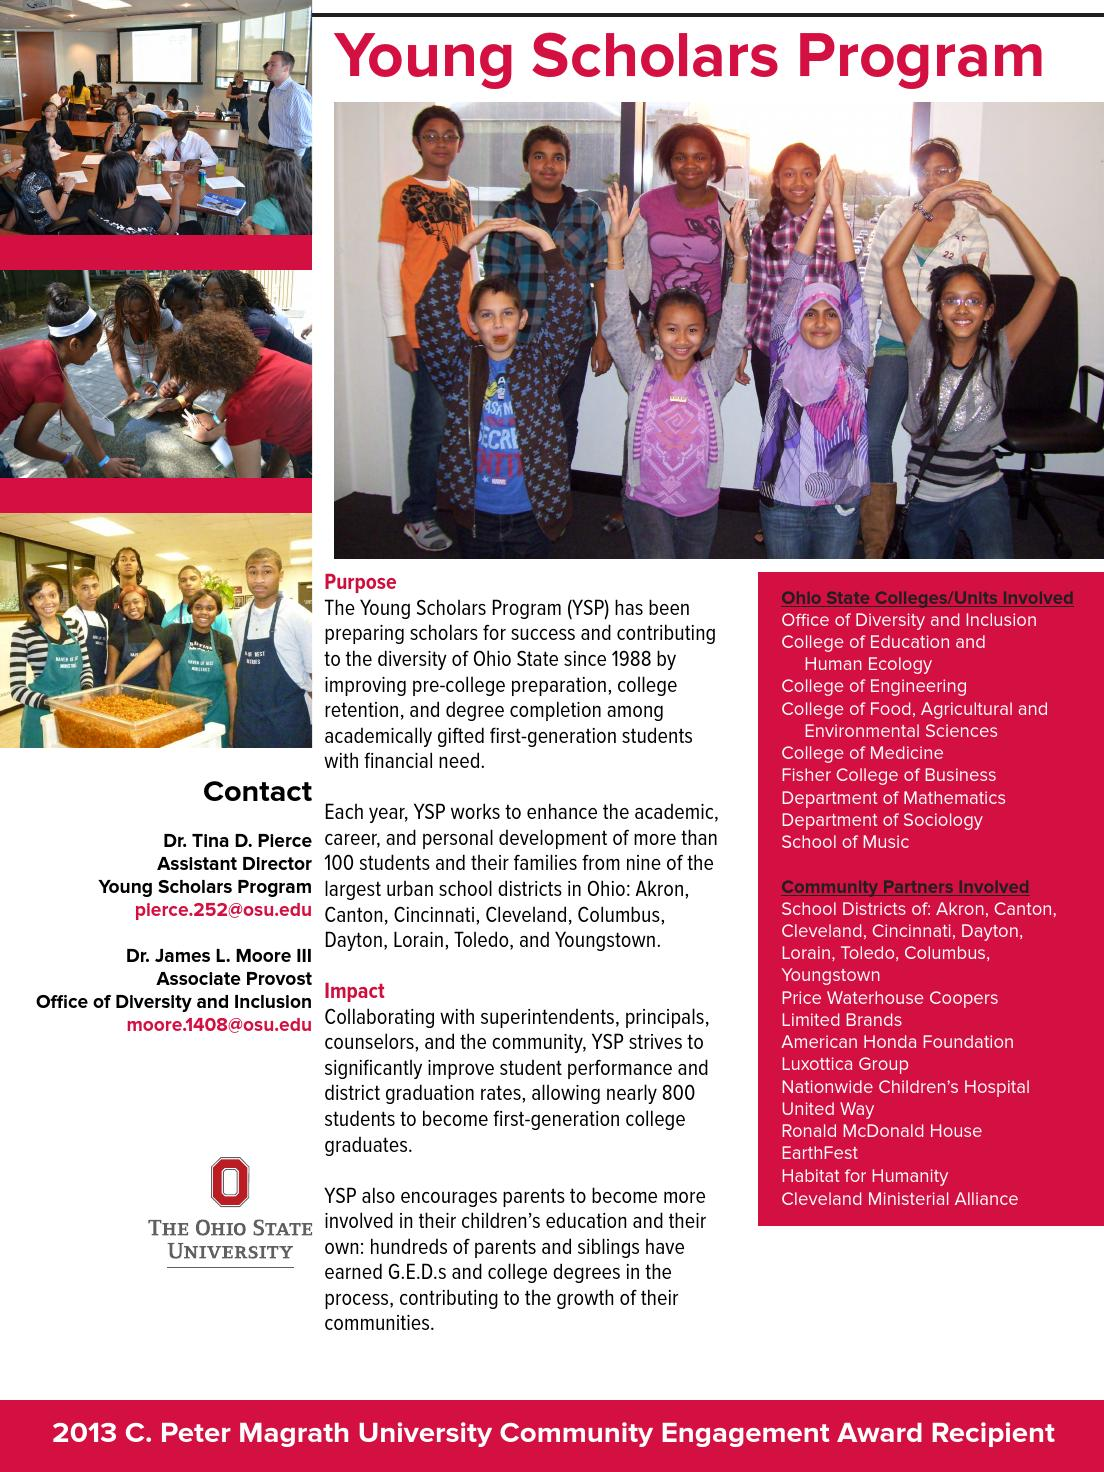 2014 Ohio State University Outreach and Engagement Forum by Ben